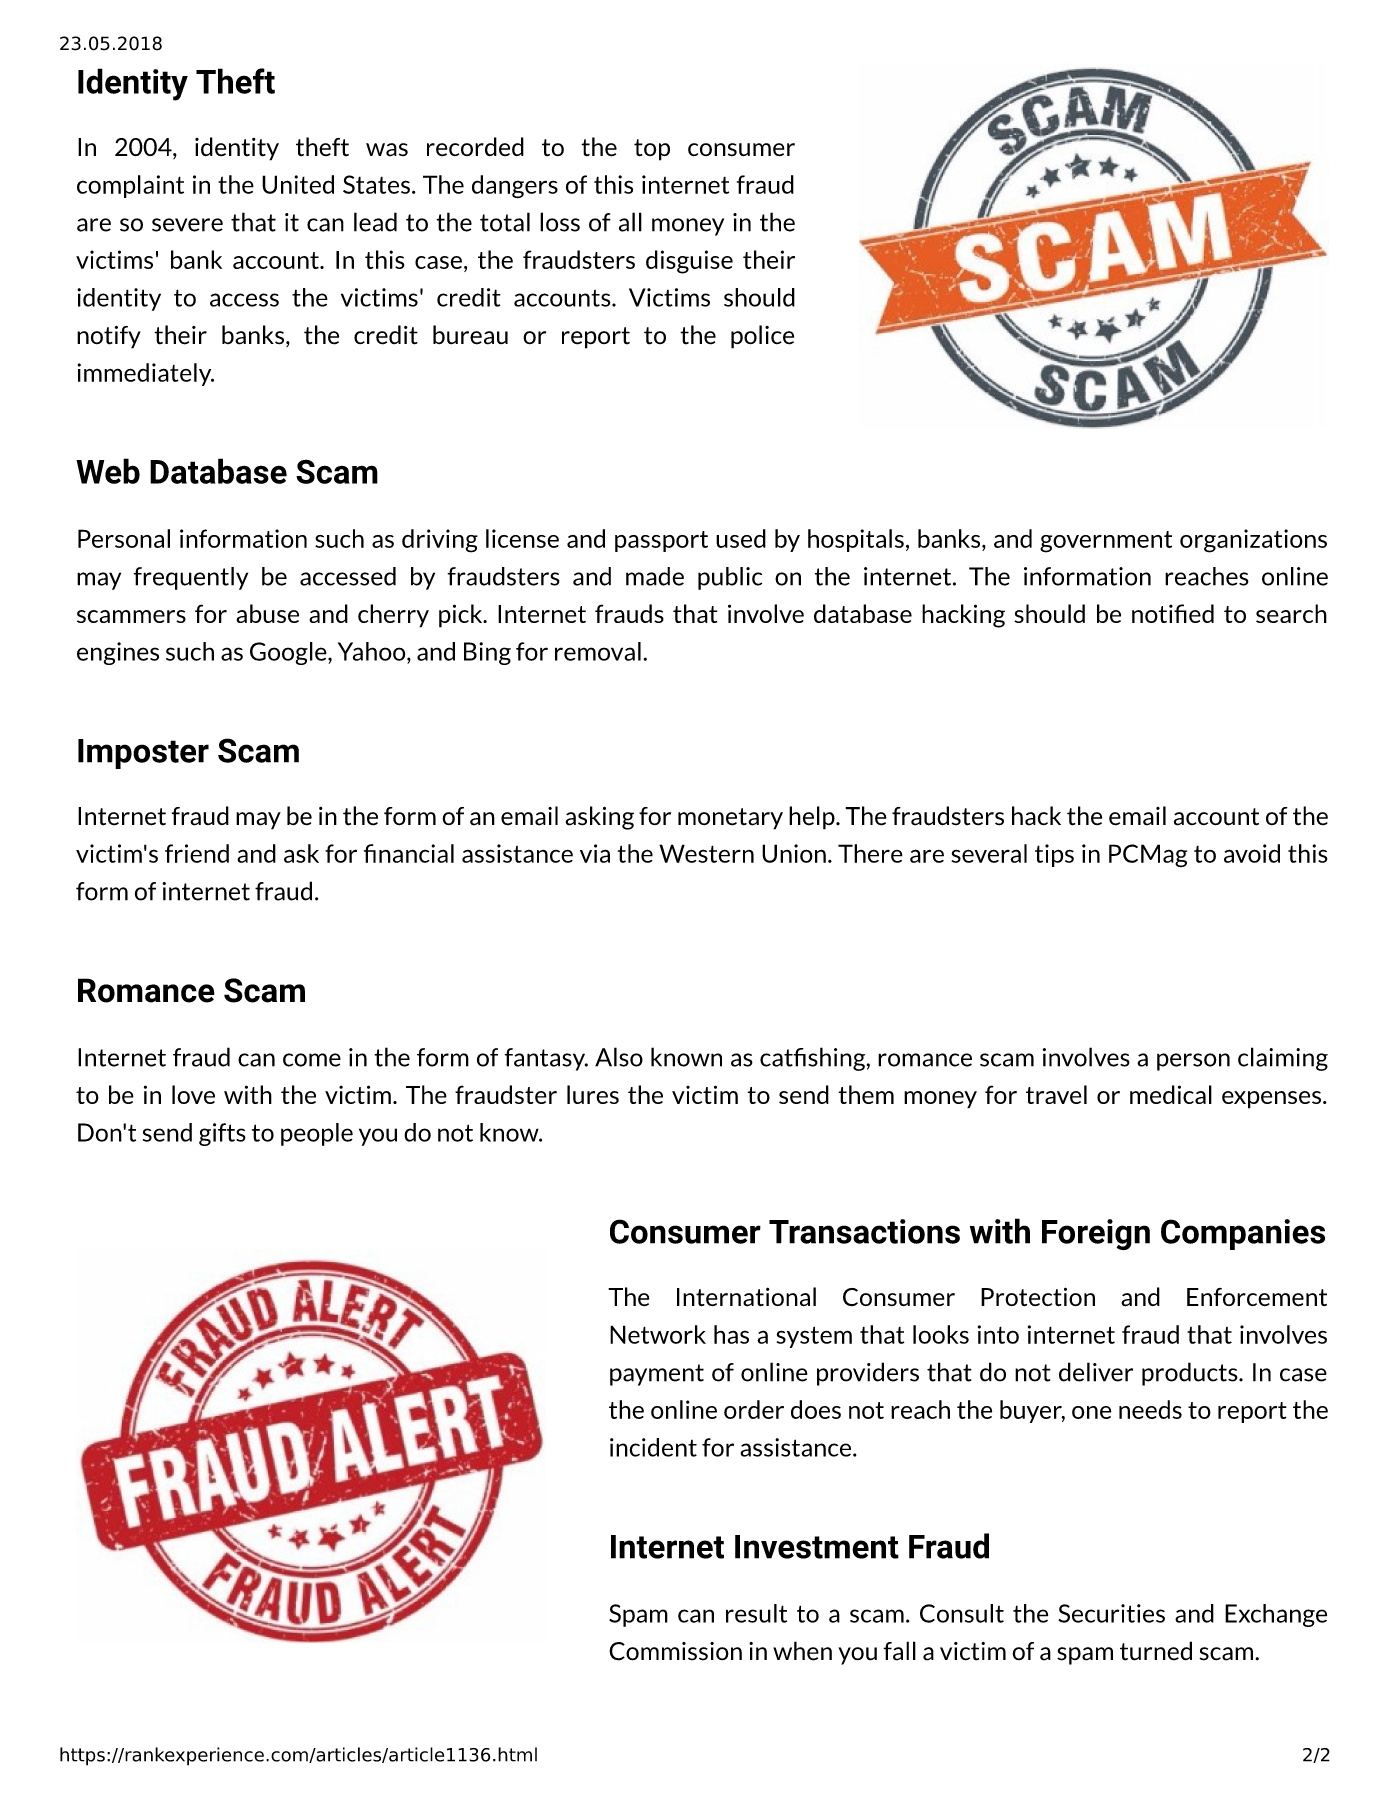 Semalt Online Frauds Explained Pages 1 2 Text Version Anyflip